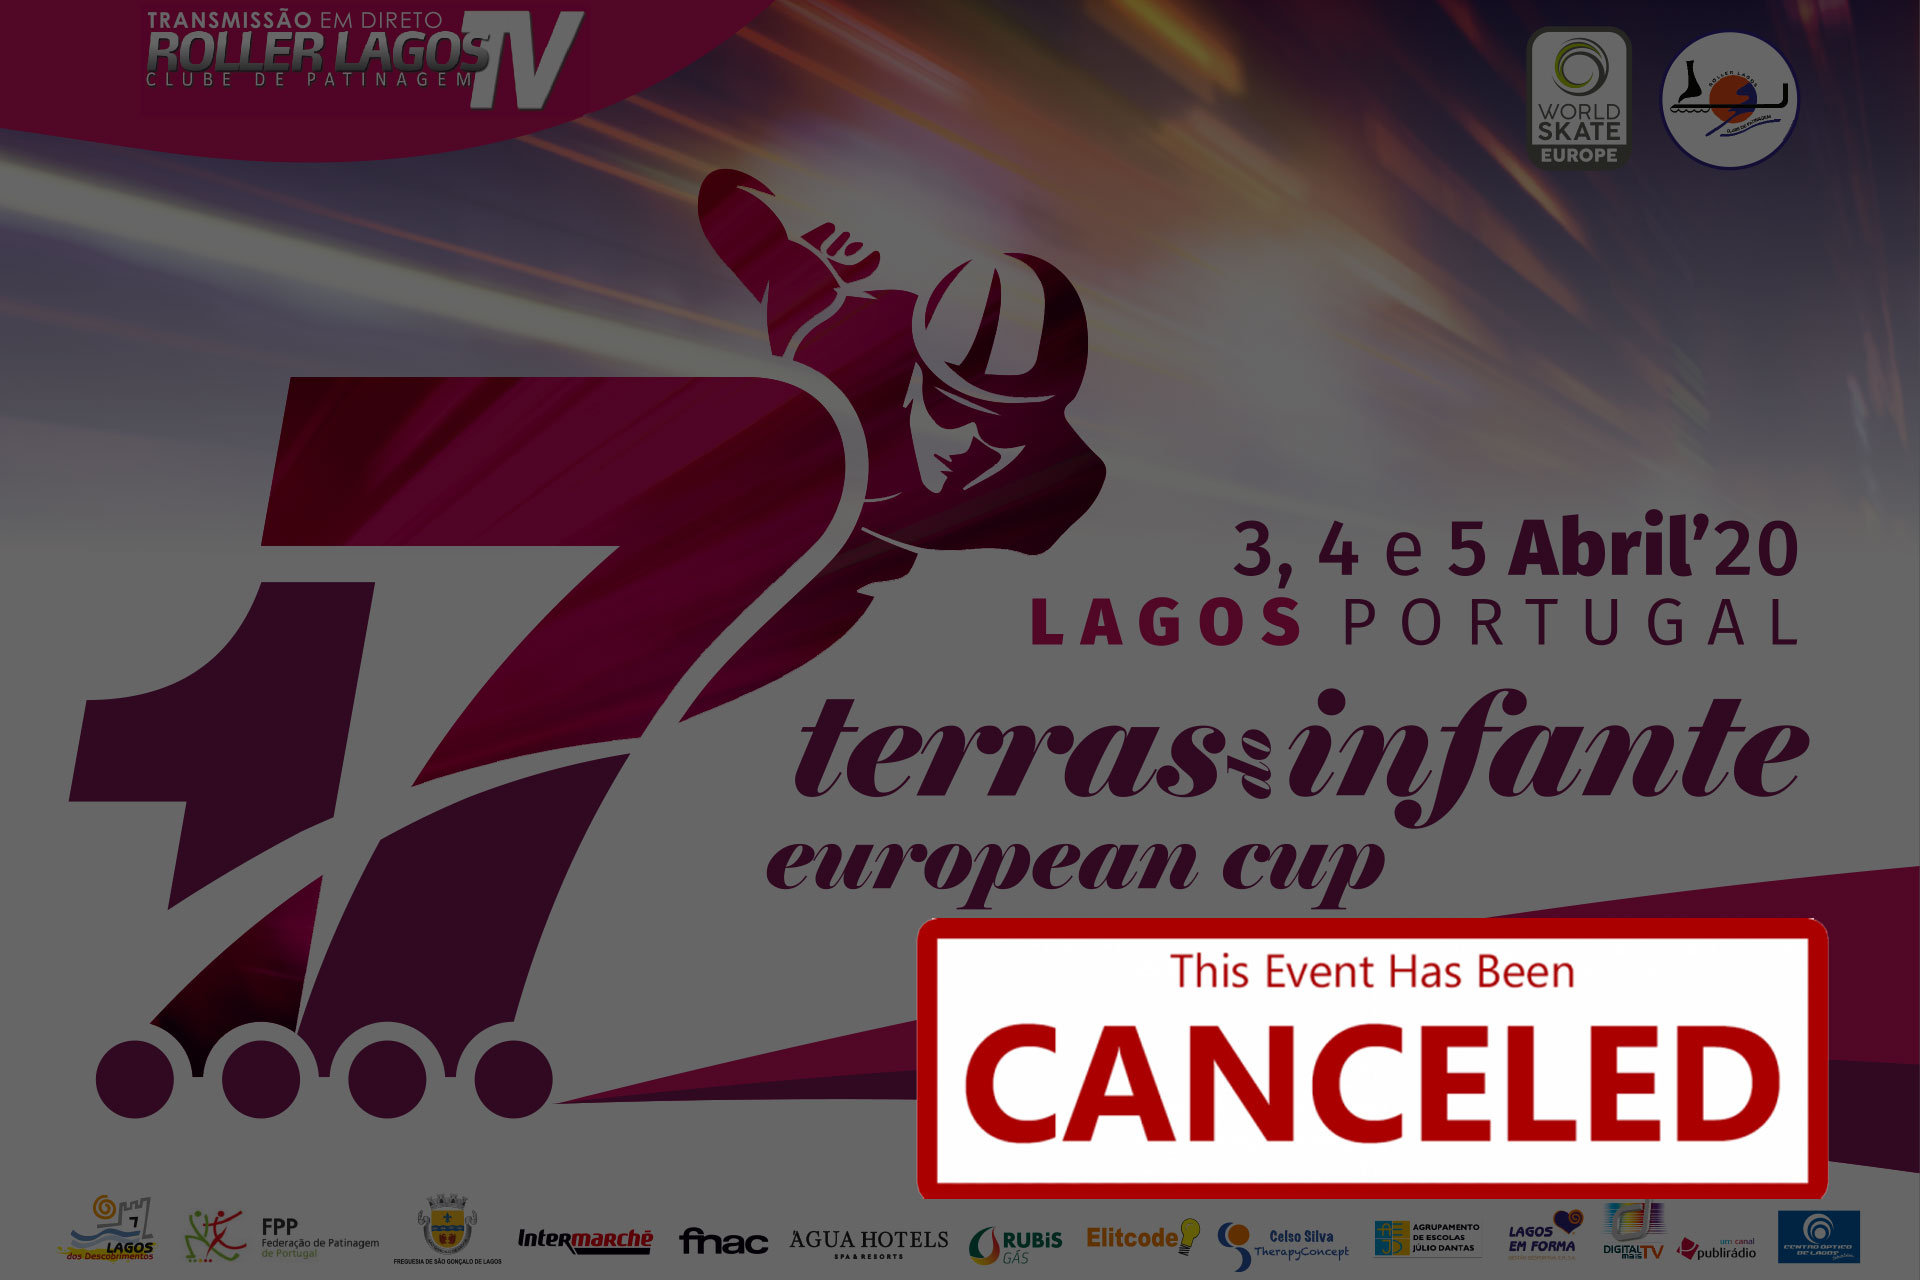 2020 terras do infante inline speed skating – cancelled! 2020 Terras do Infante Inline Speed Skating – Cancelled! cancelled 5 infante Terras do Infante – Lagos dos Descobrimentos – Official Page cancelled 5